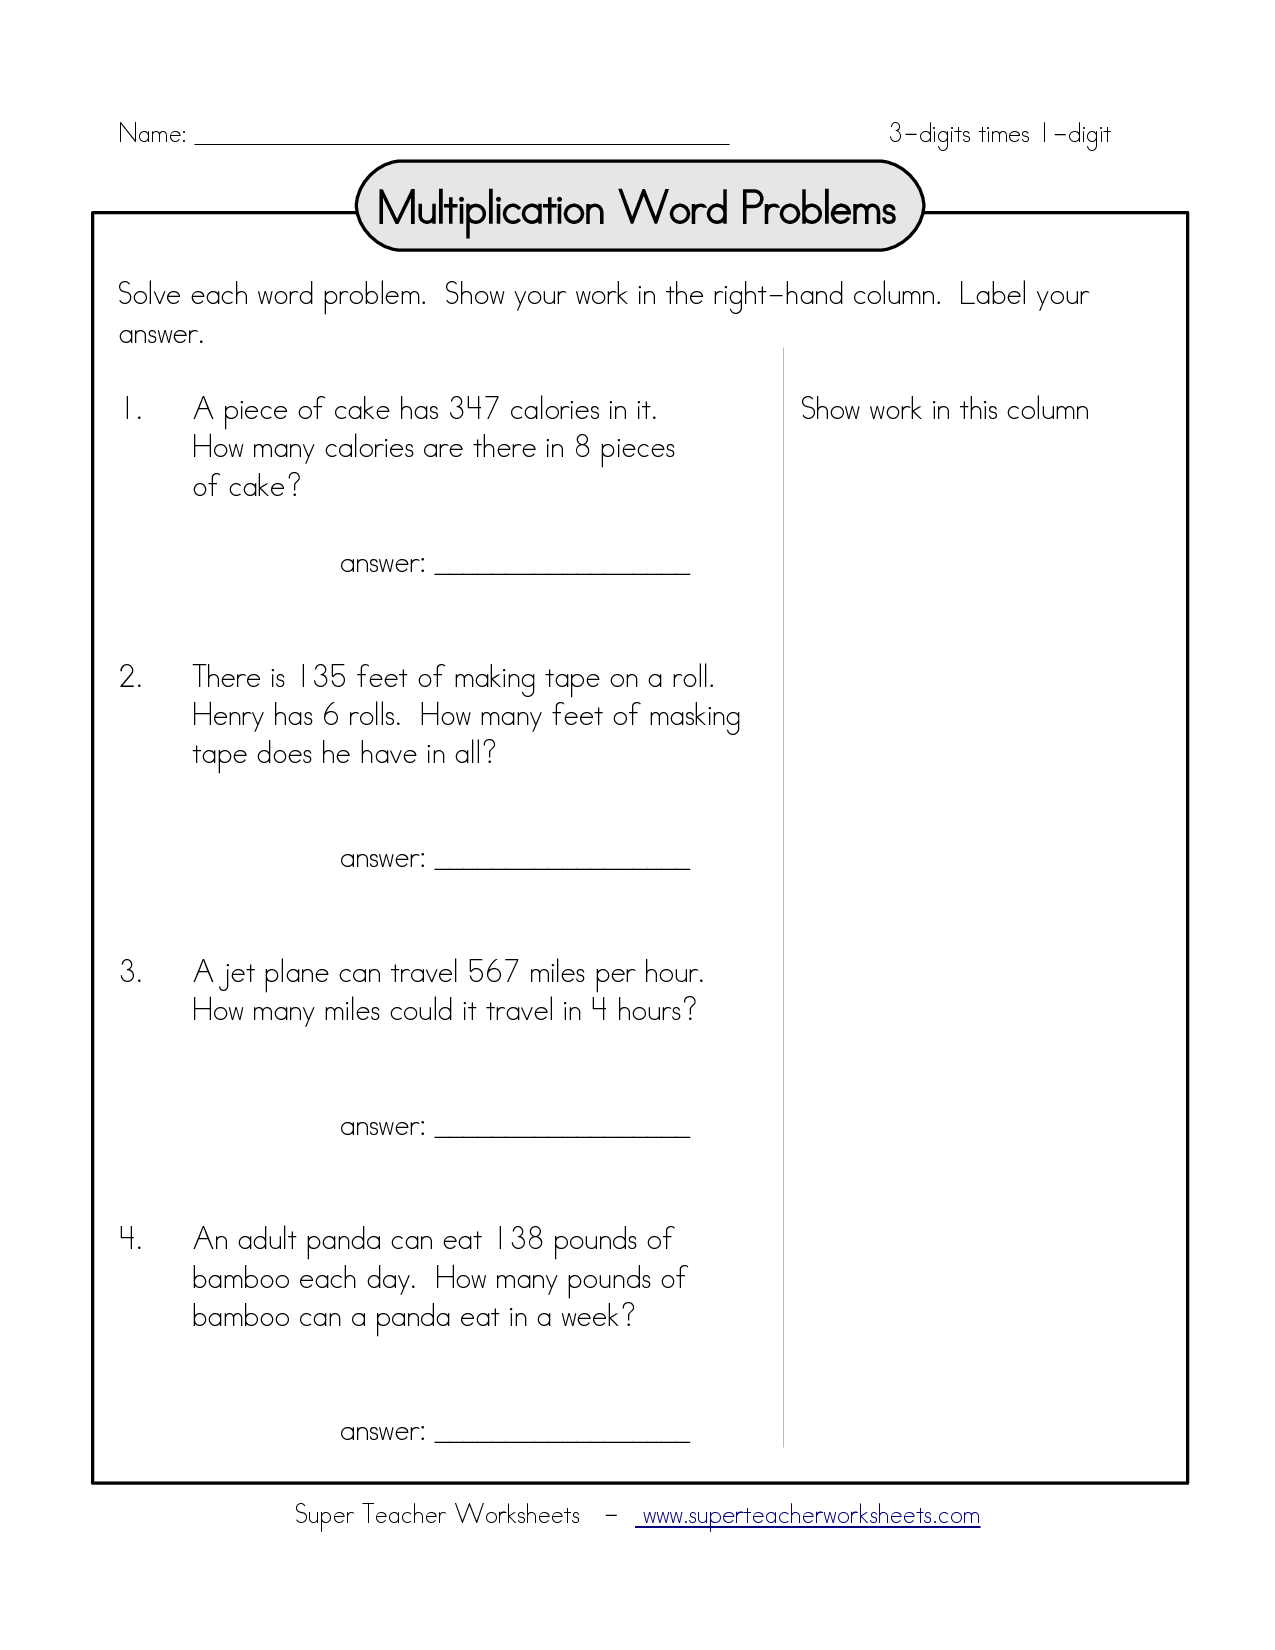 Multiplication Word Problems Worksheets grade 3 math – Problem Solving Multiplication Worksheets